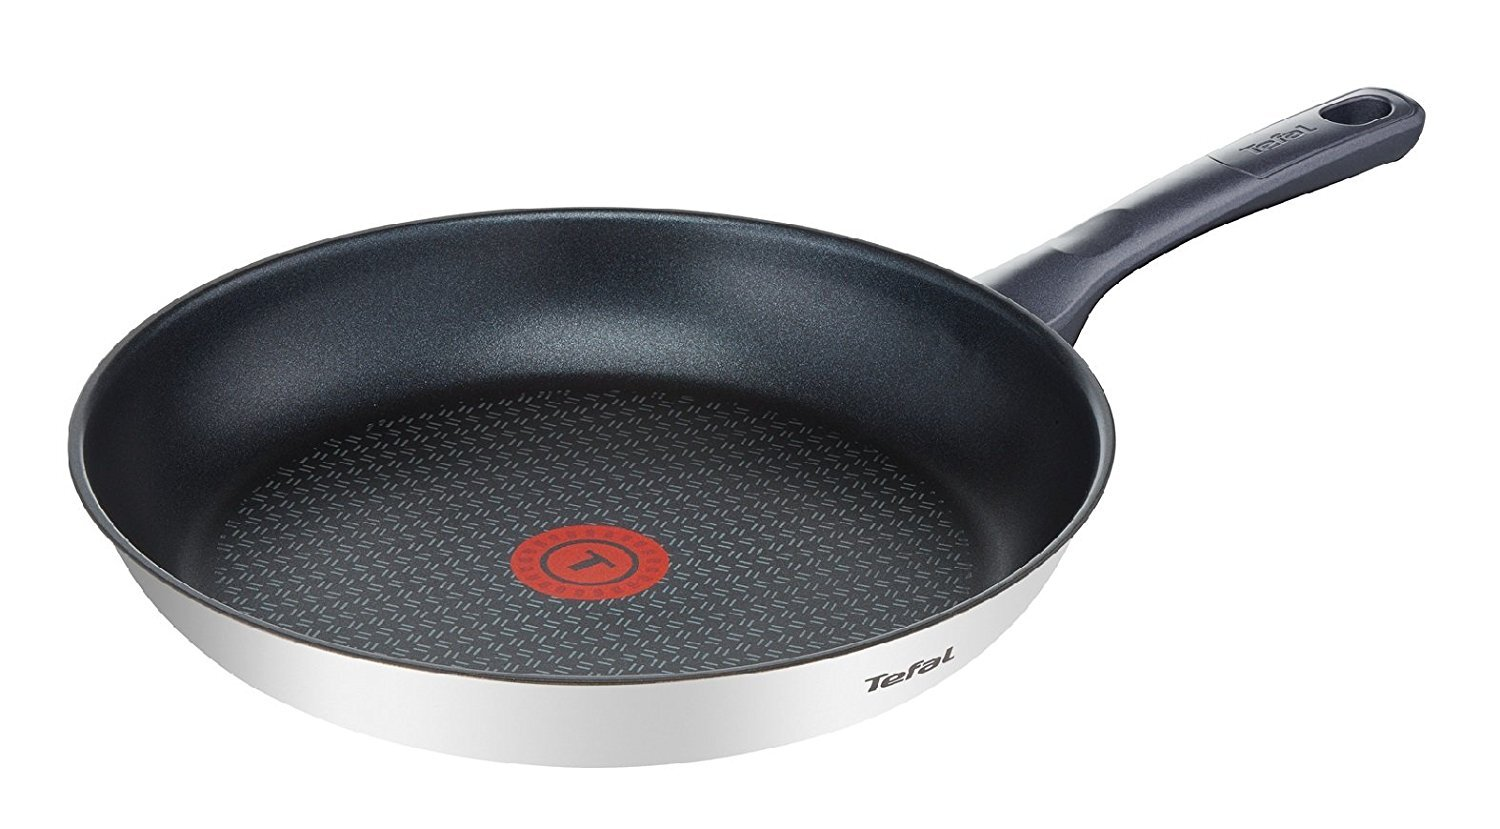 http://makow84.pl/Patelnie/Daily-Cook/patelnia-tefal-daily-cook-g713006-indukcja.jpg